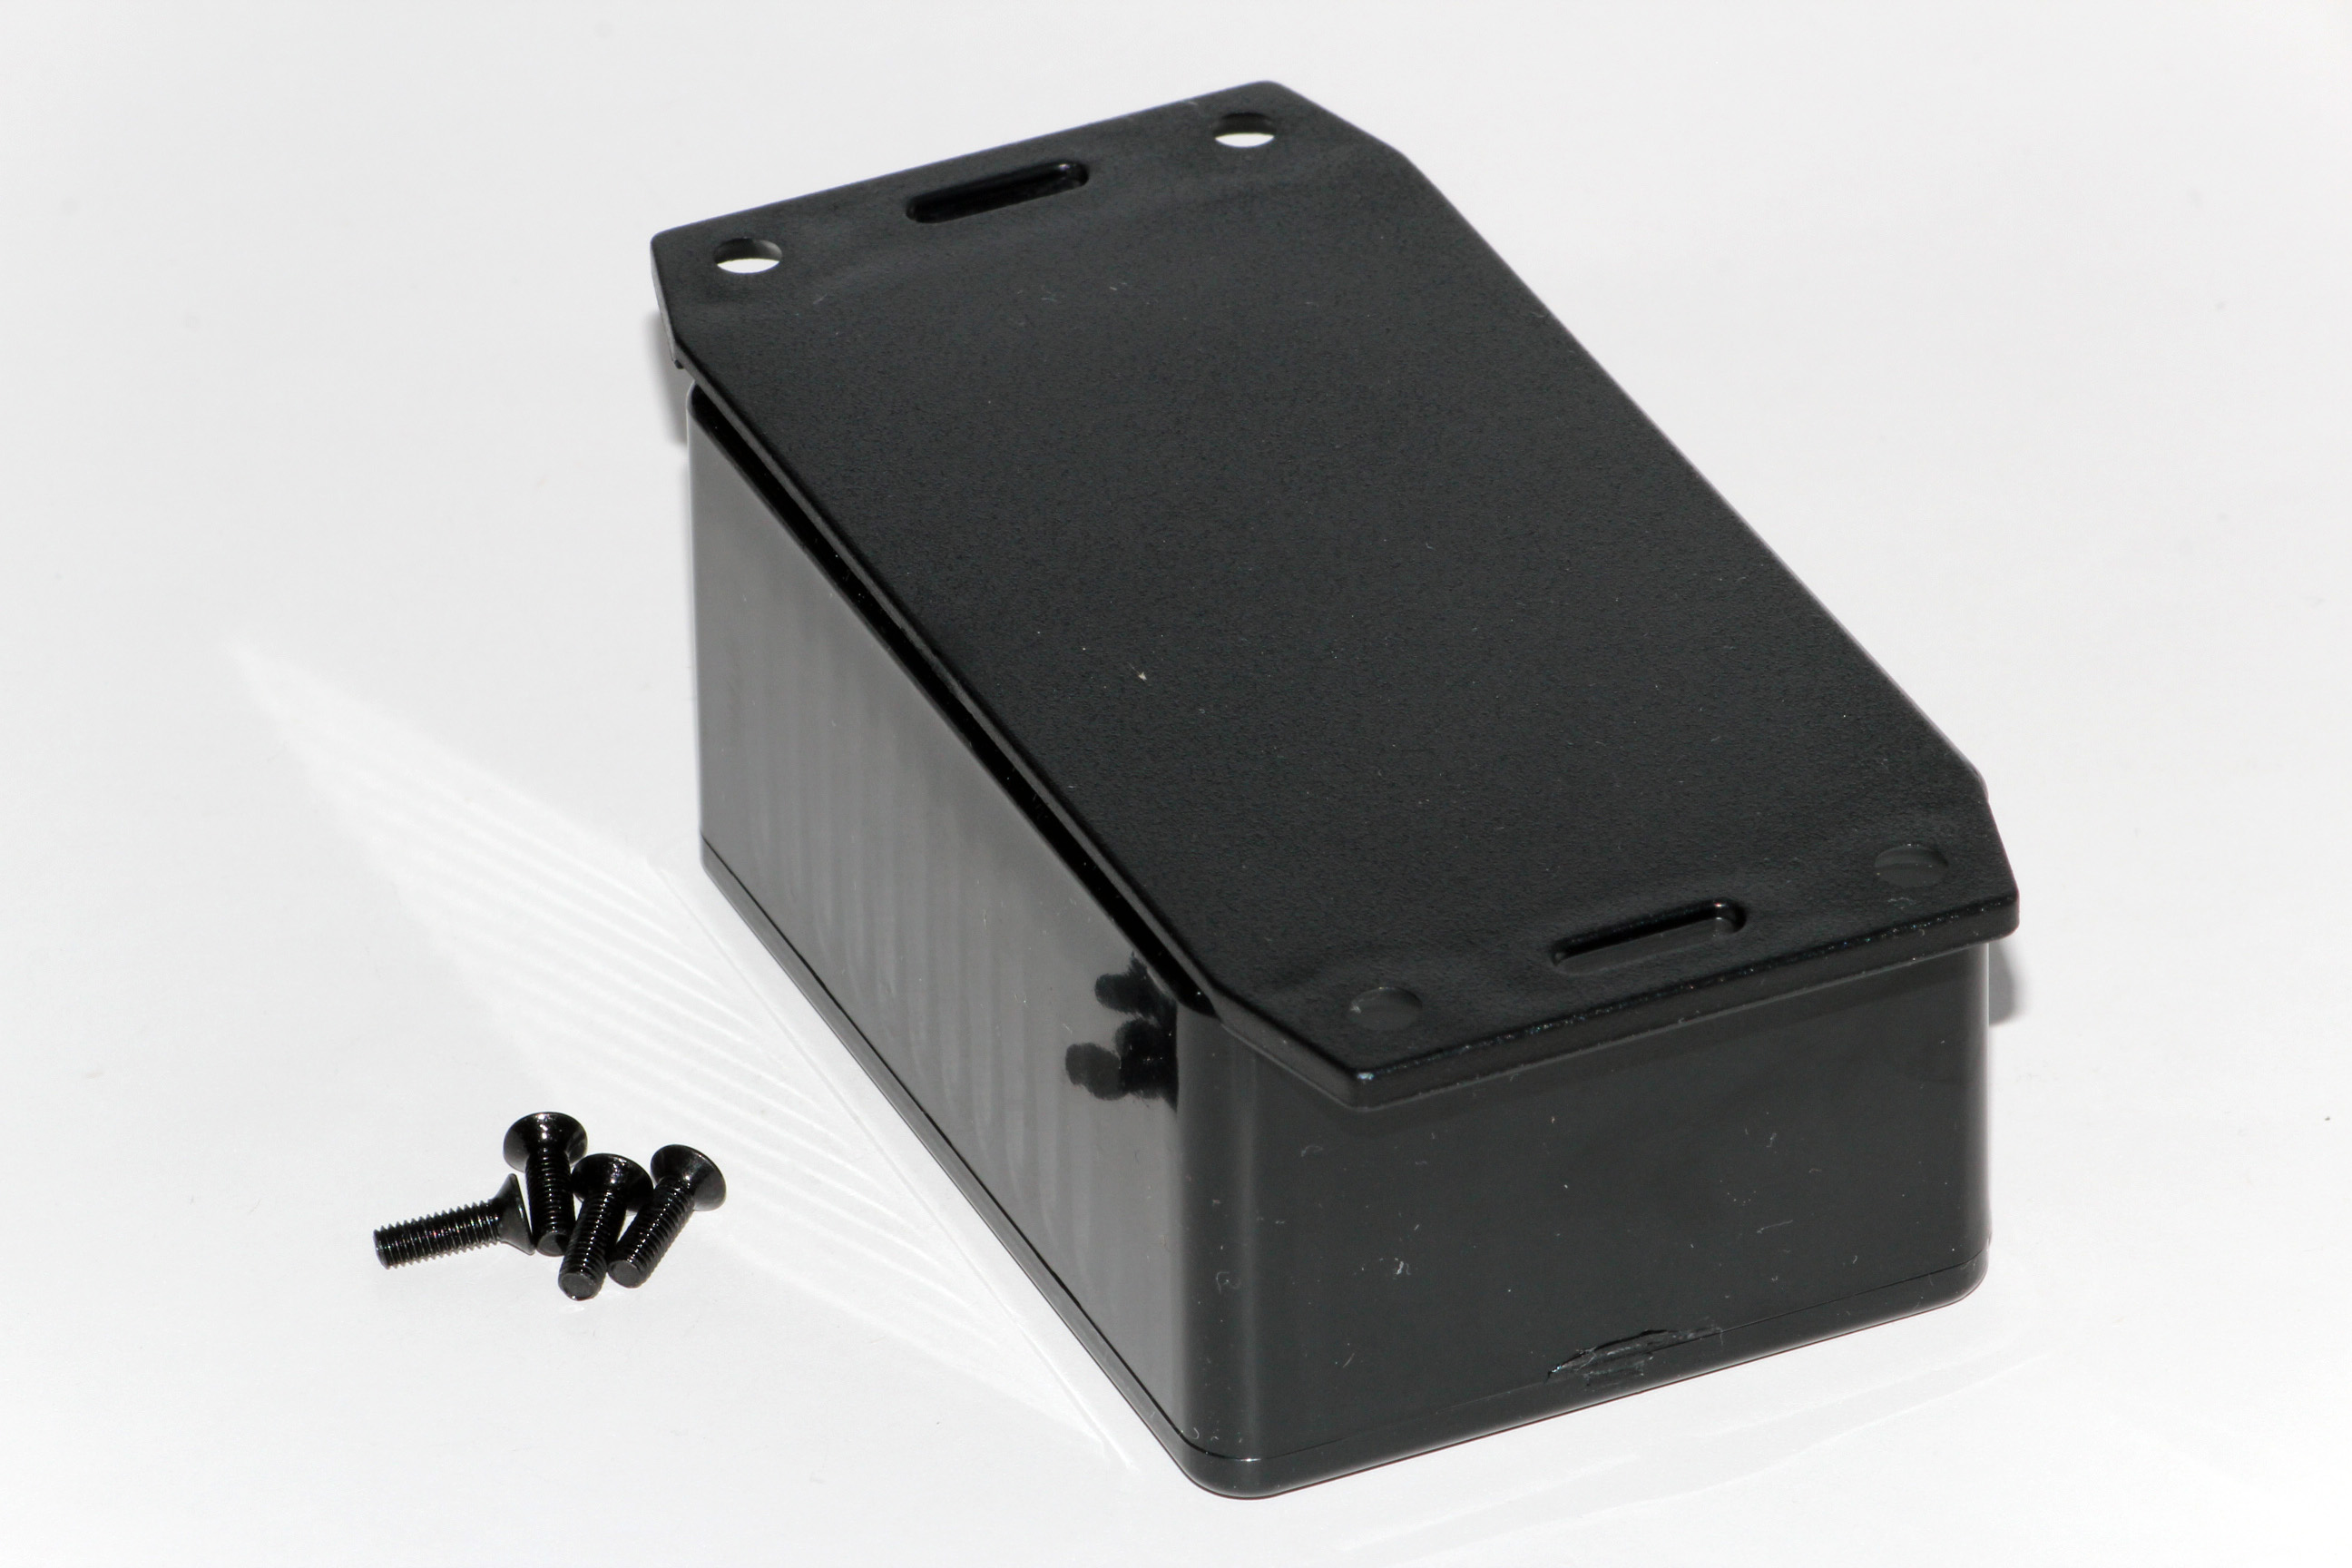 1591LF2BK - 1591 Series Multipurpose Flame Retardant ABS Plastic Enclosures with Bottom Flange